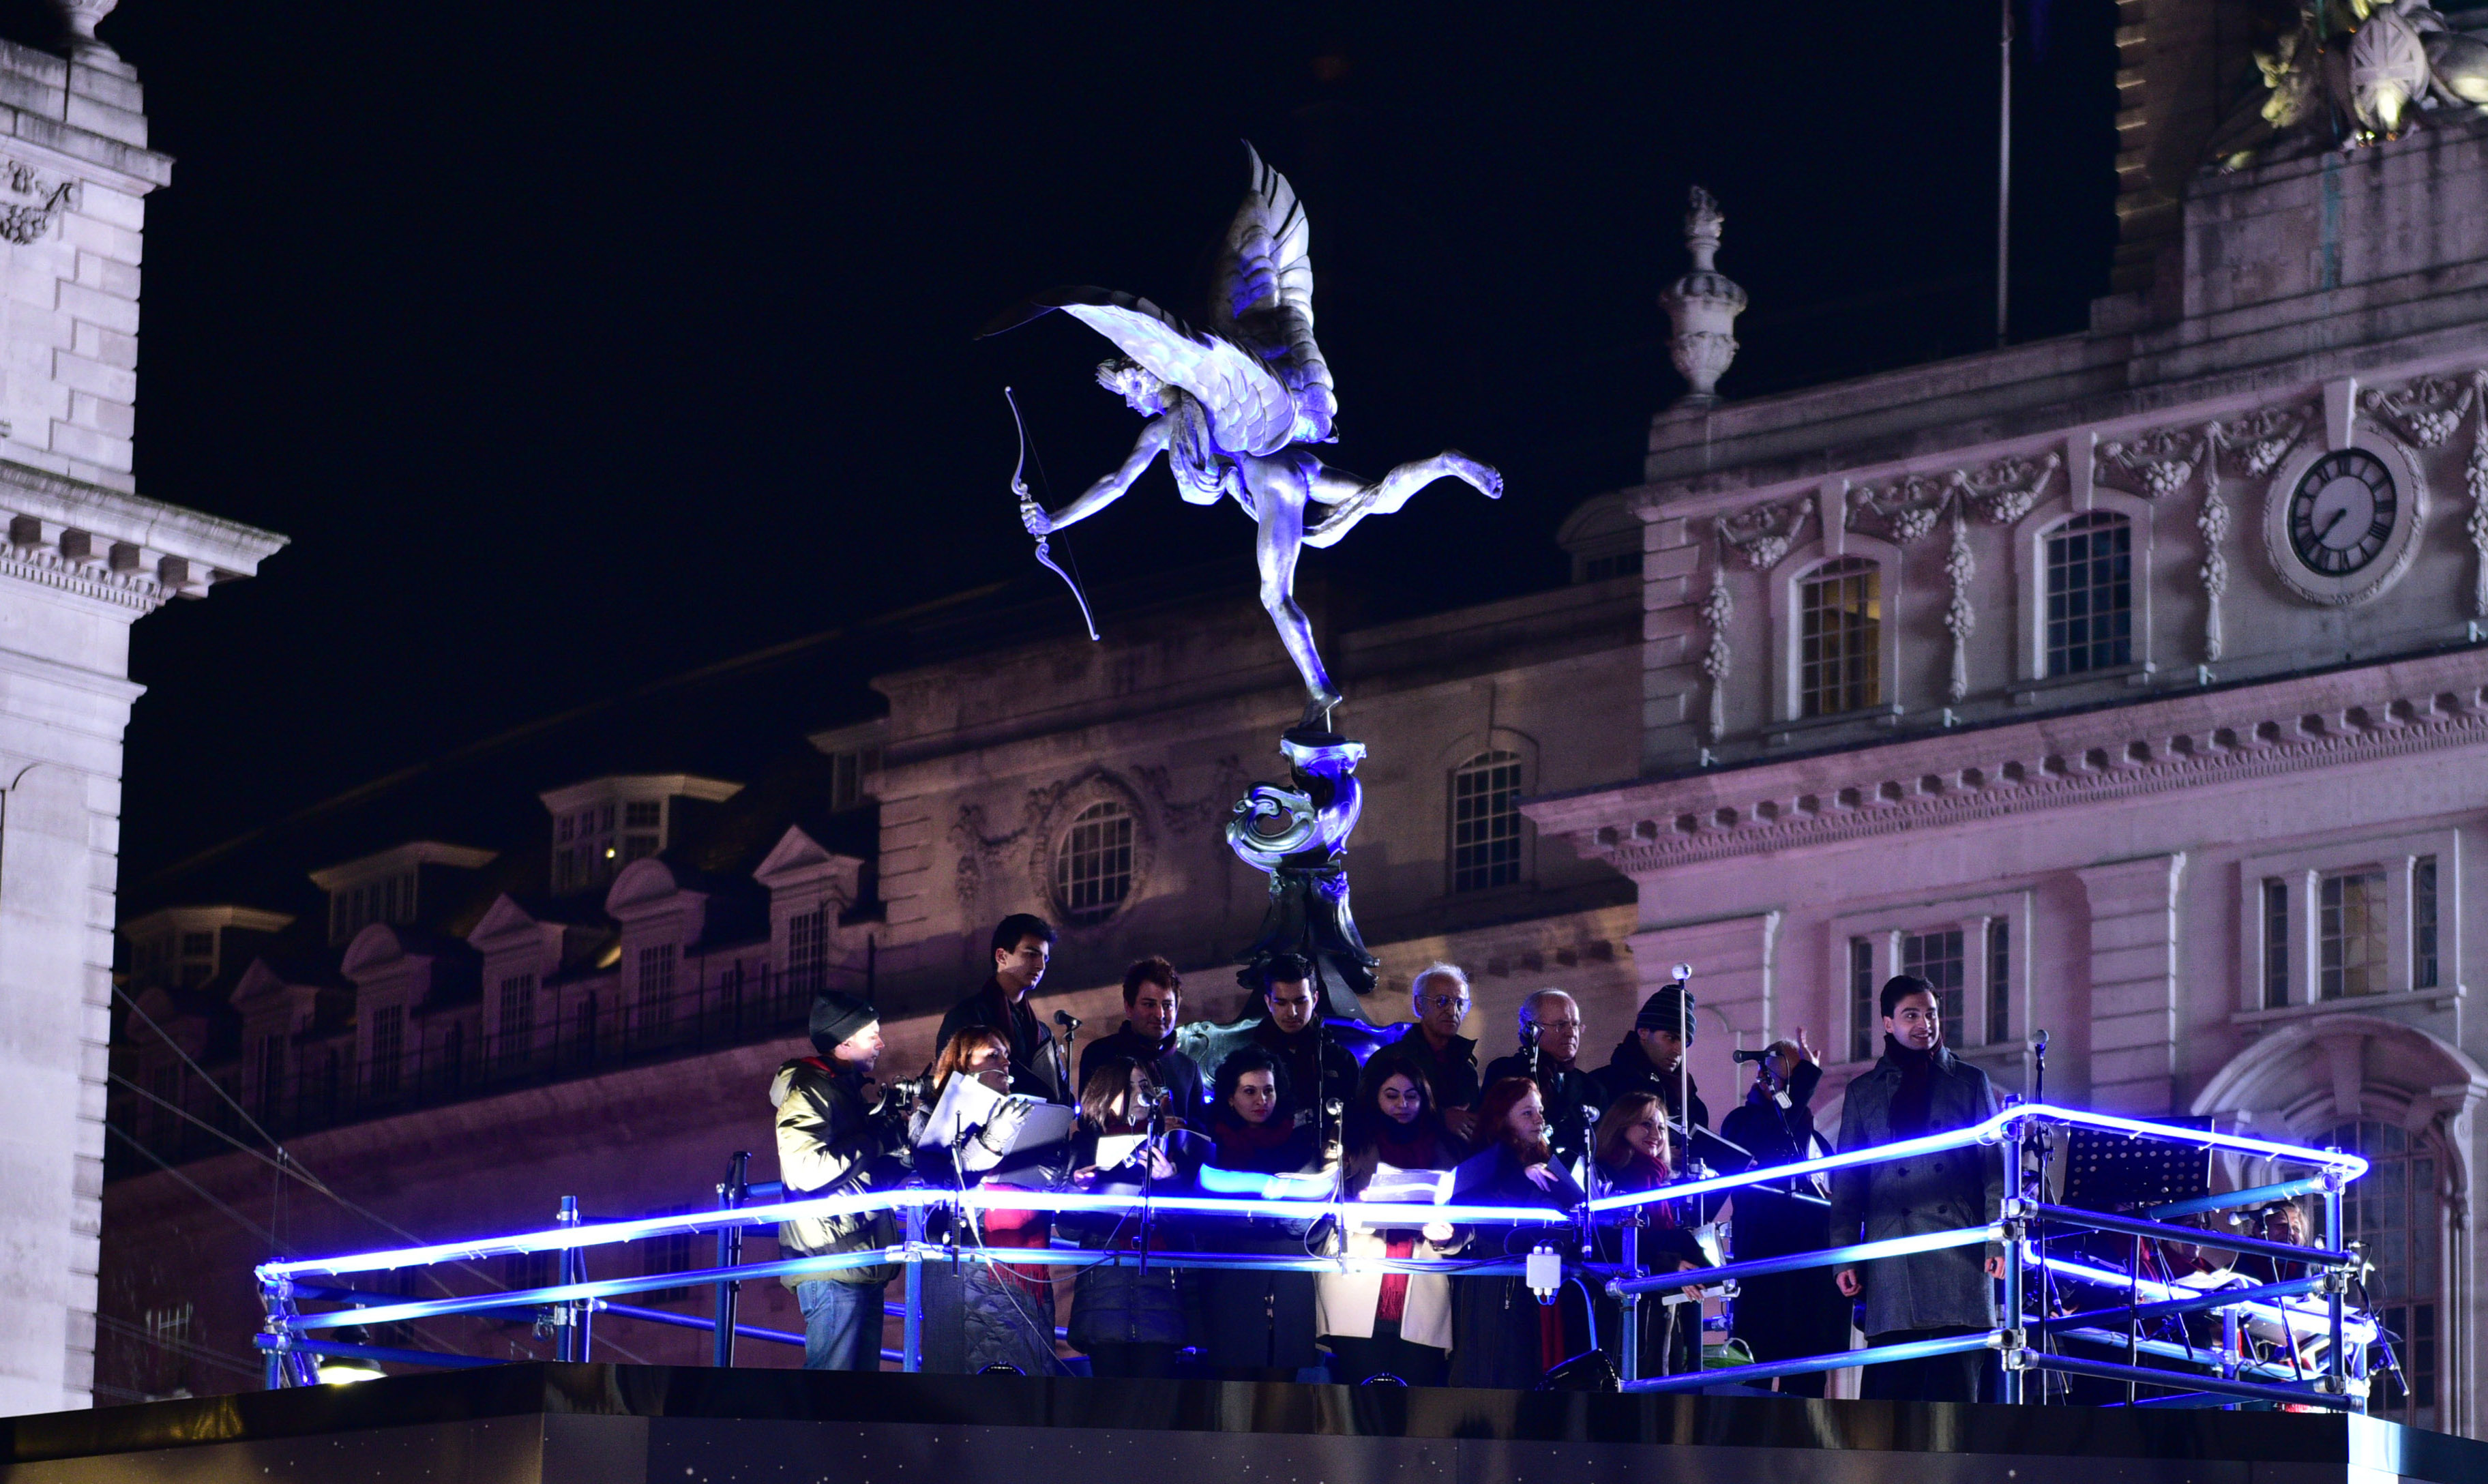 Concert at Piccadilly Circus on 01 December 2016